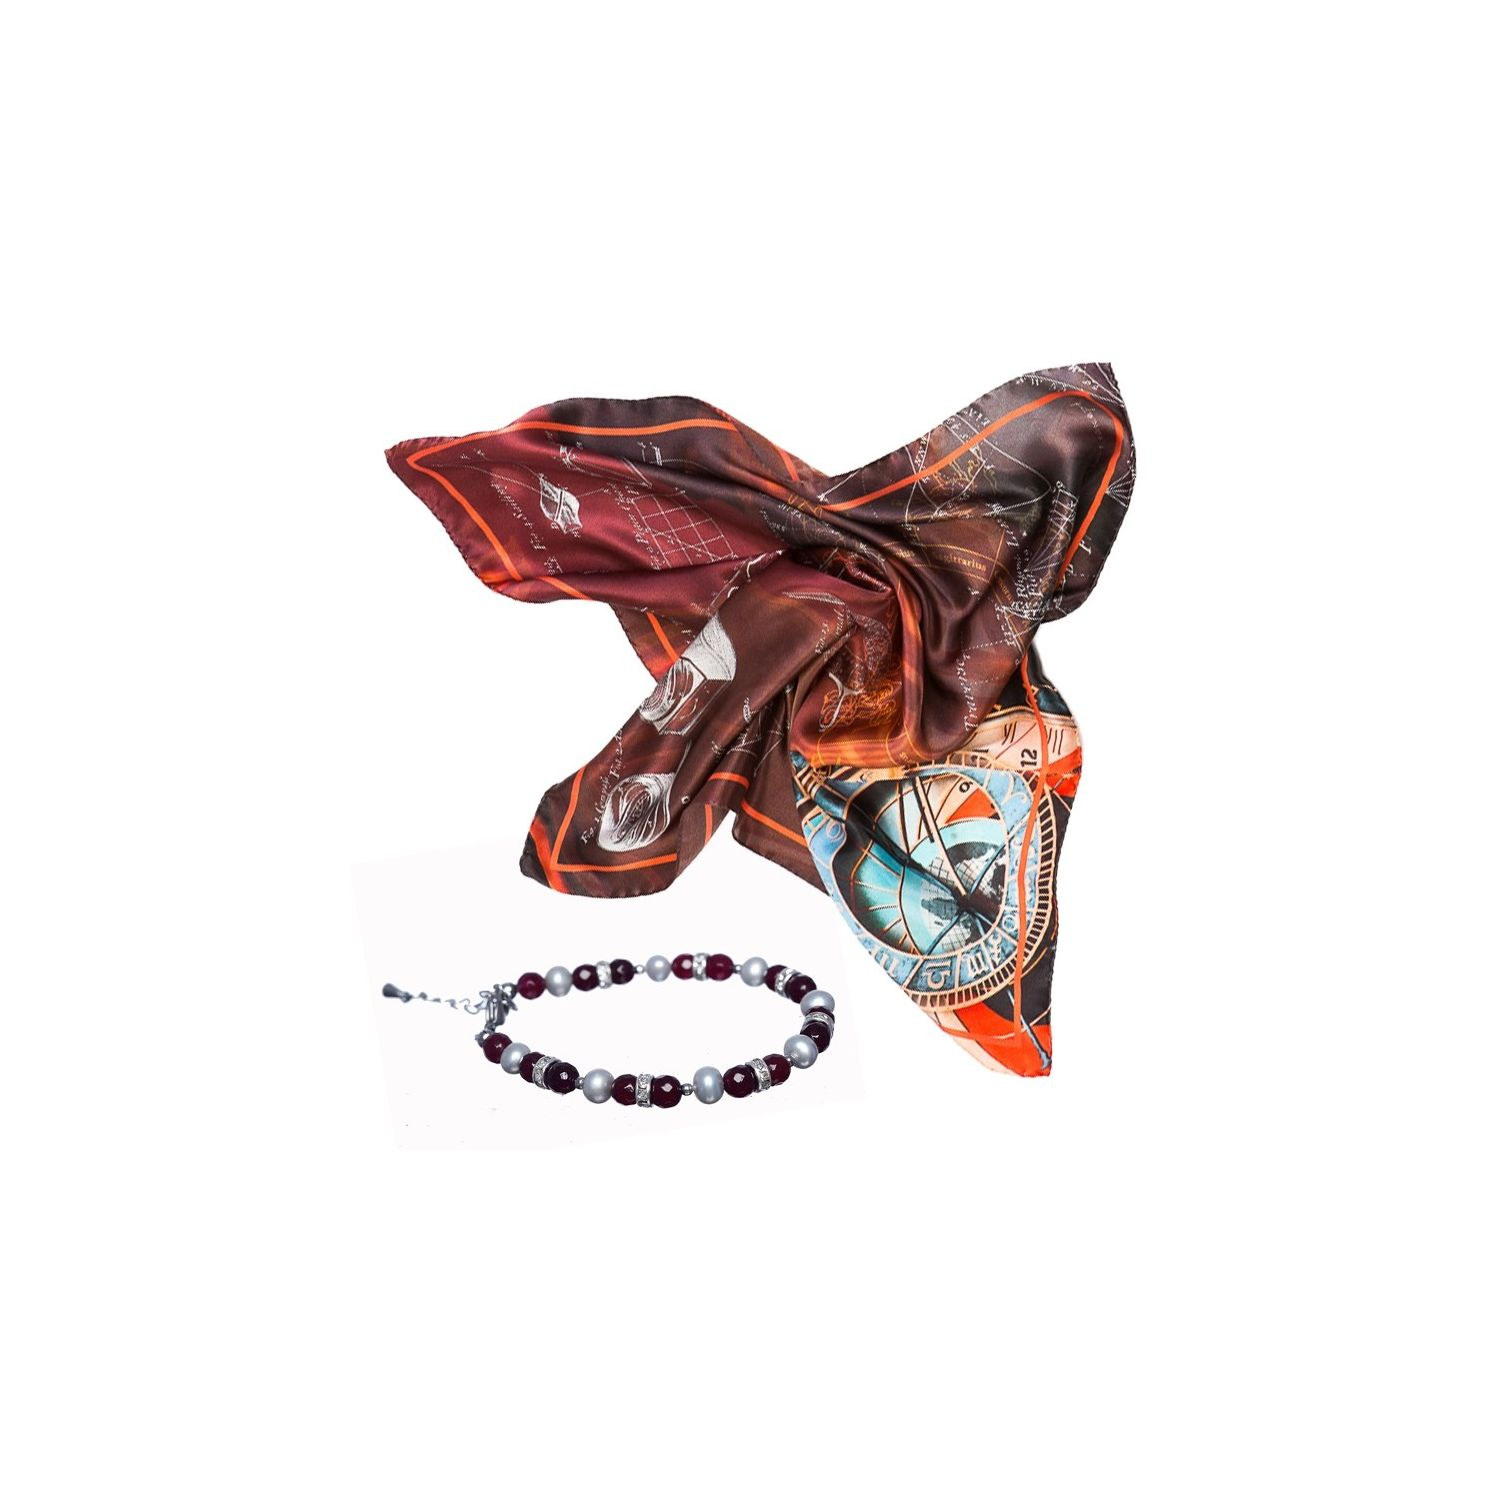 GIFT: Mila Schon explore scarf chocolate and cognac agate and pearls bracelet